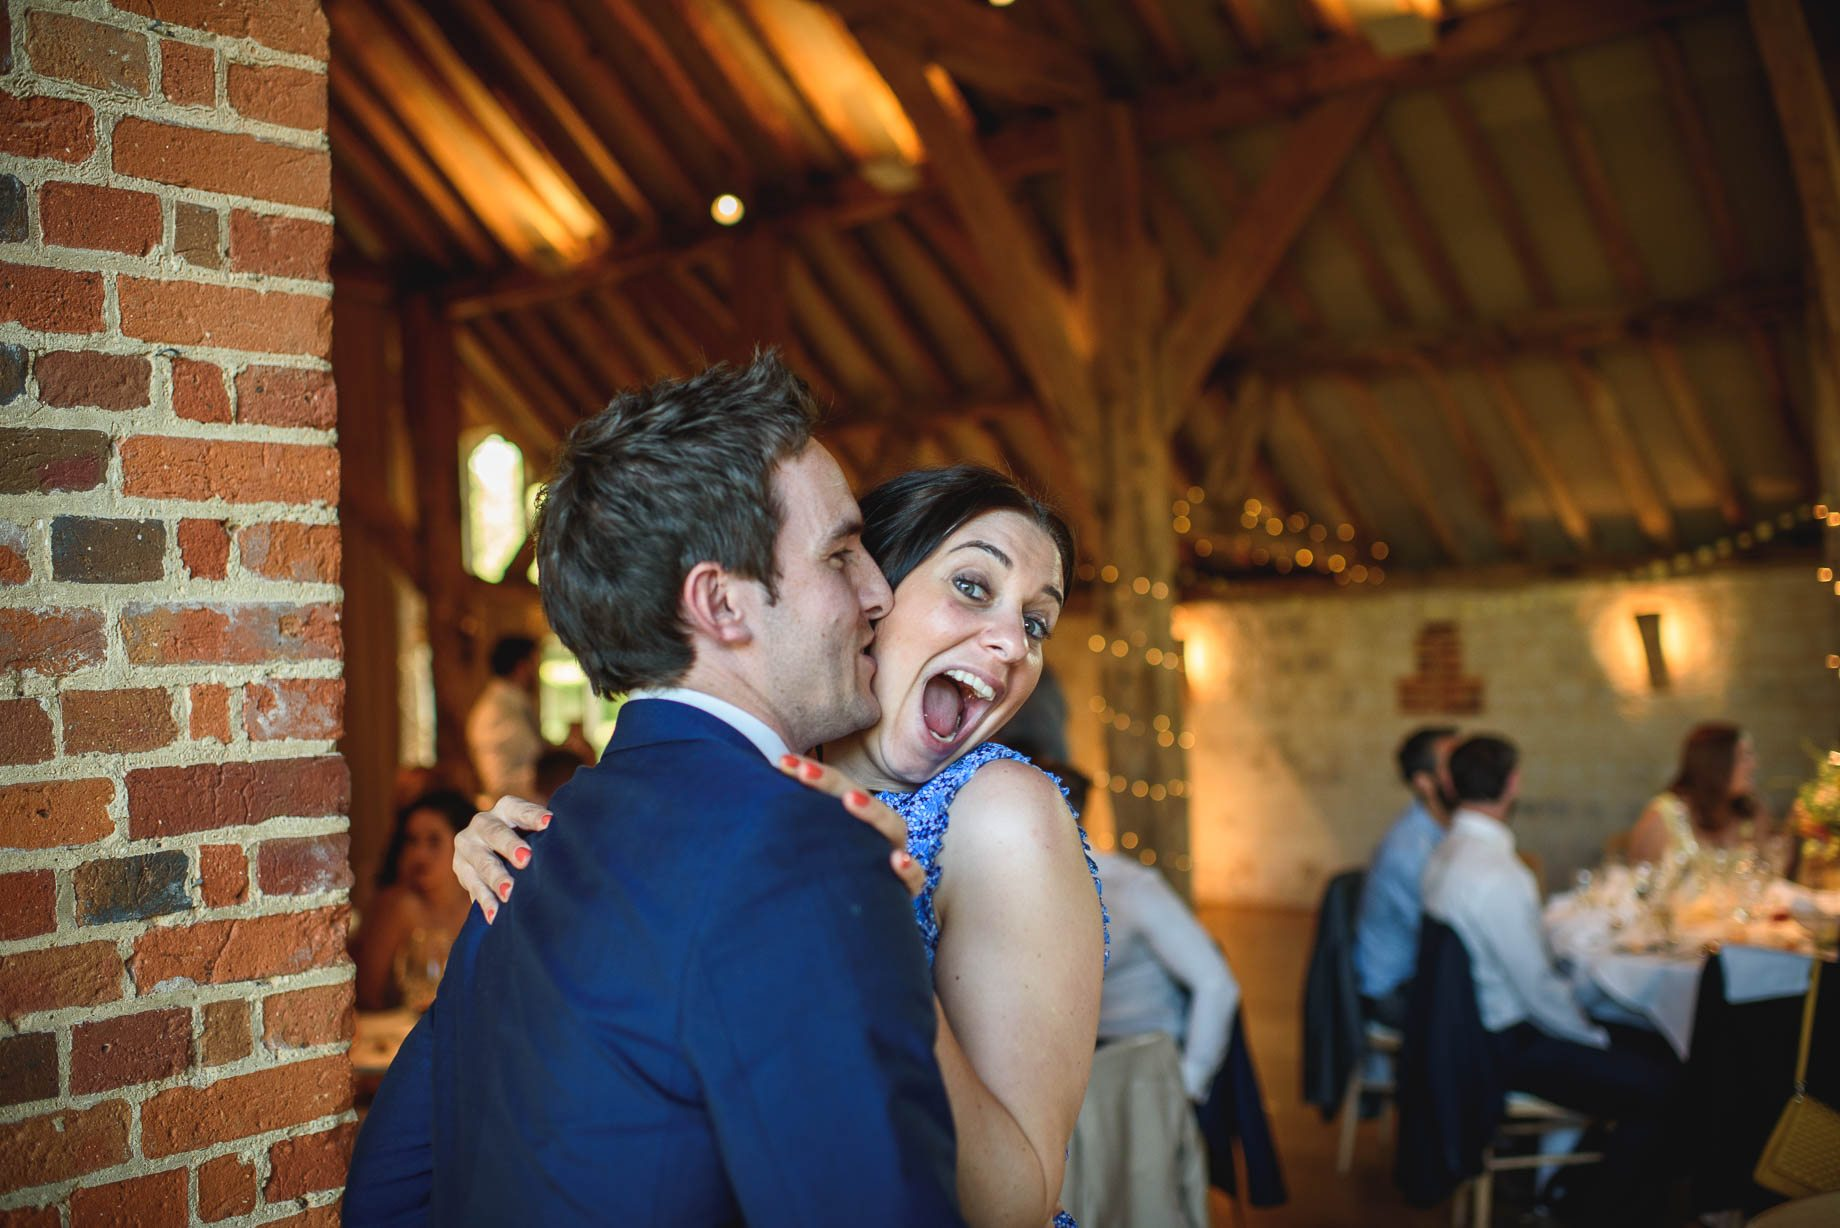 Bury Court Barn wedding photography by Guy Collier - Jo and Jamie (135 of 160)